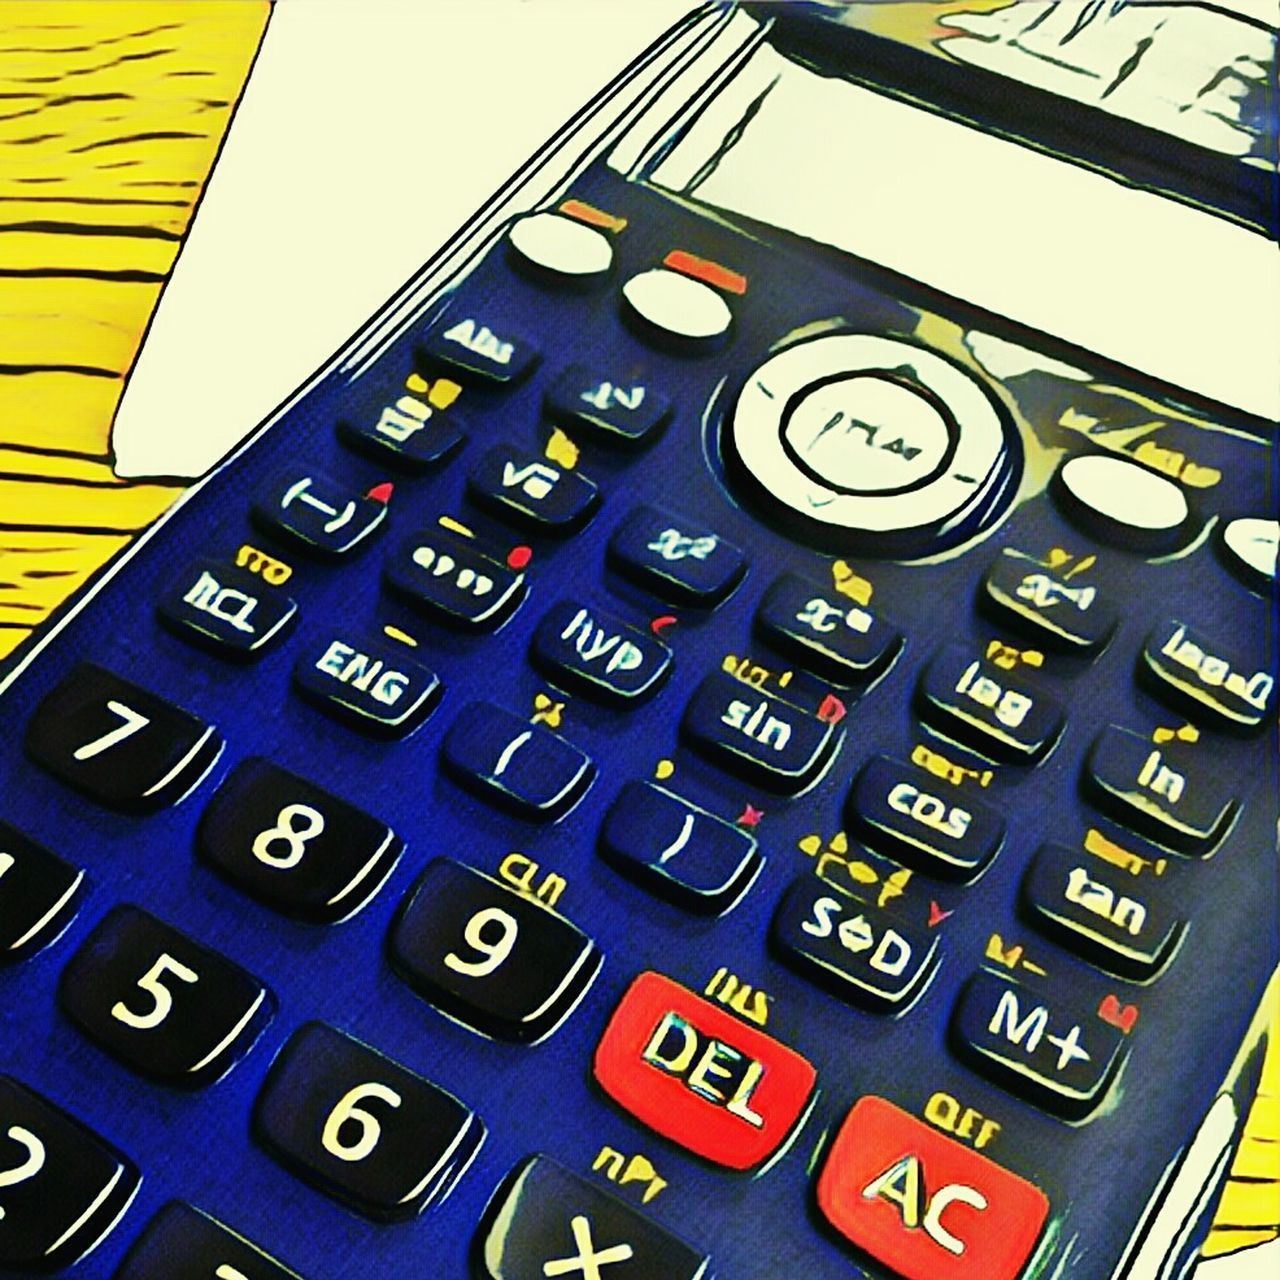 Education Calculator Calculater Calculadora Math Maths Numbers Variation Control No People Choice Close-up Indoors  Day